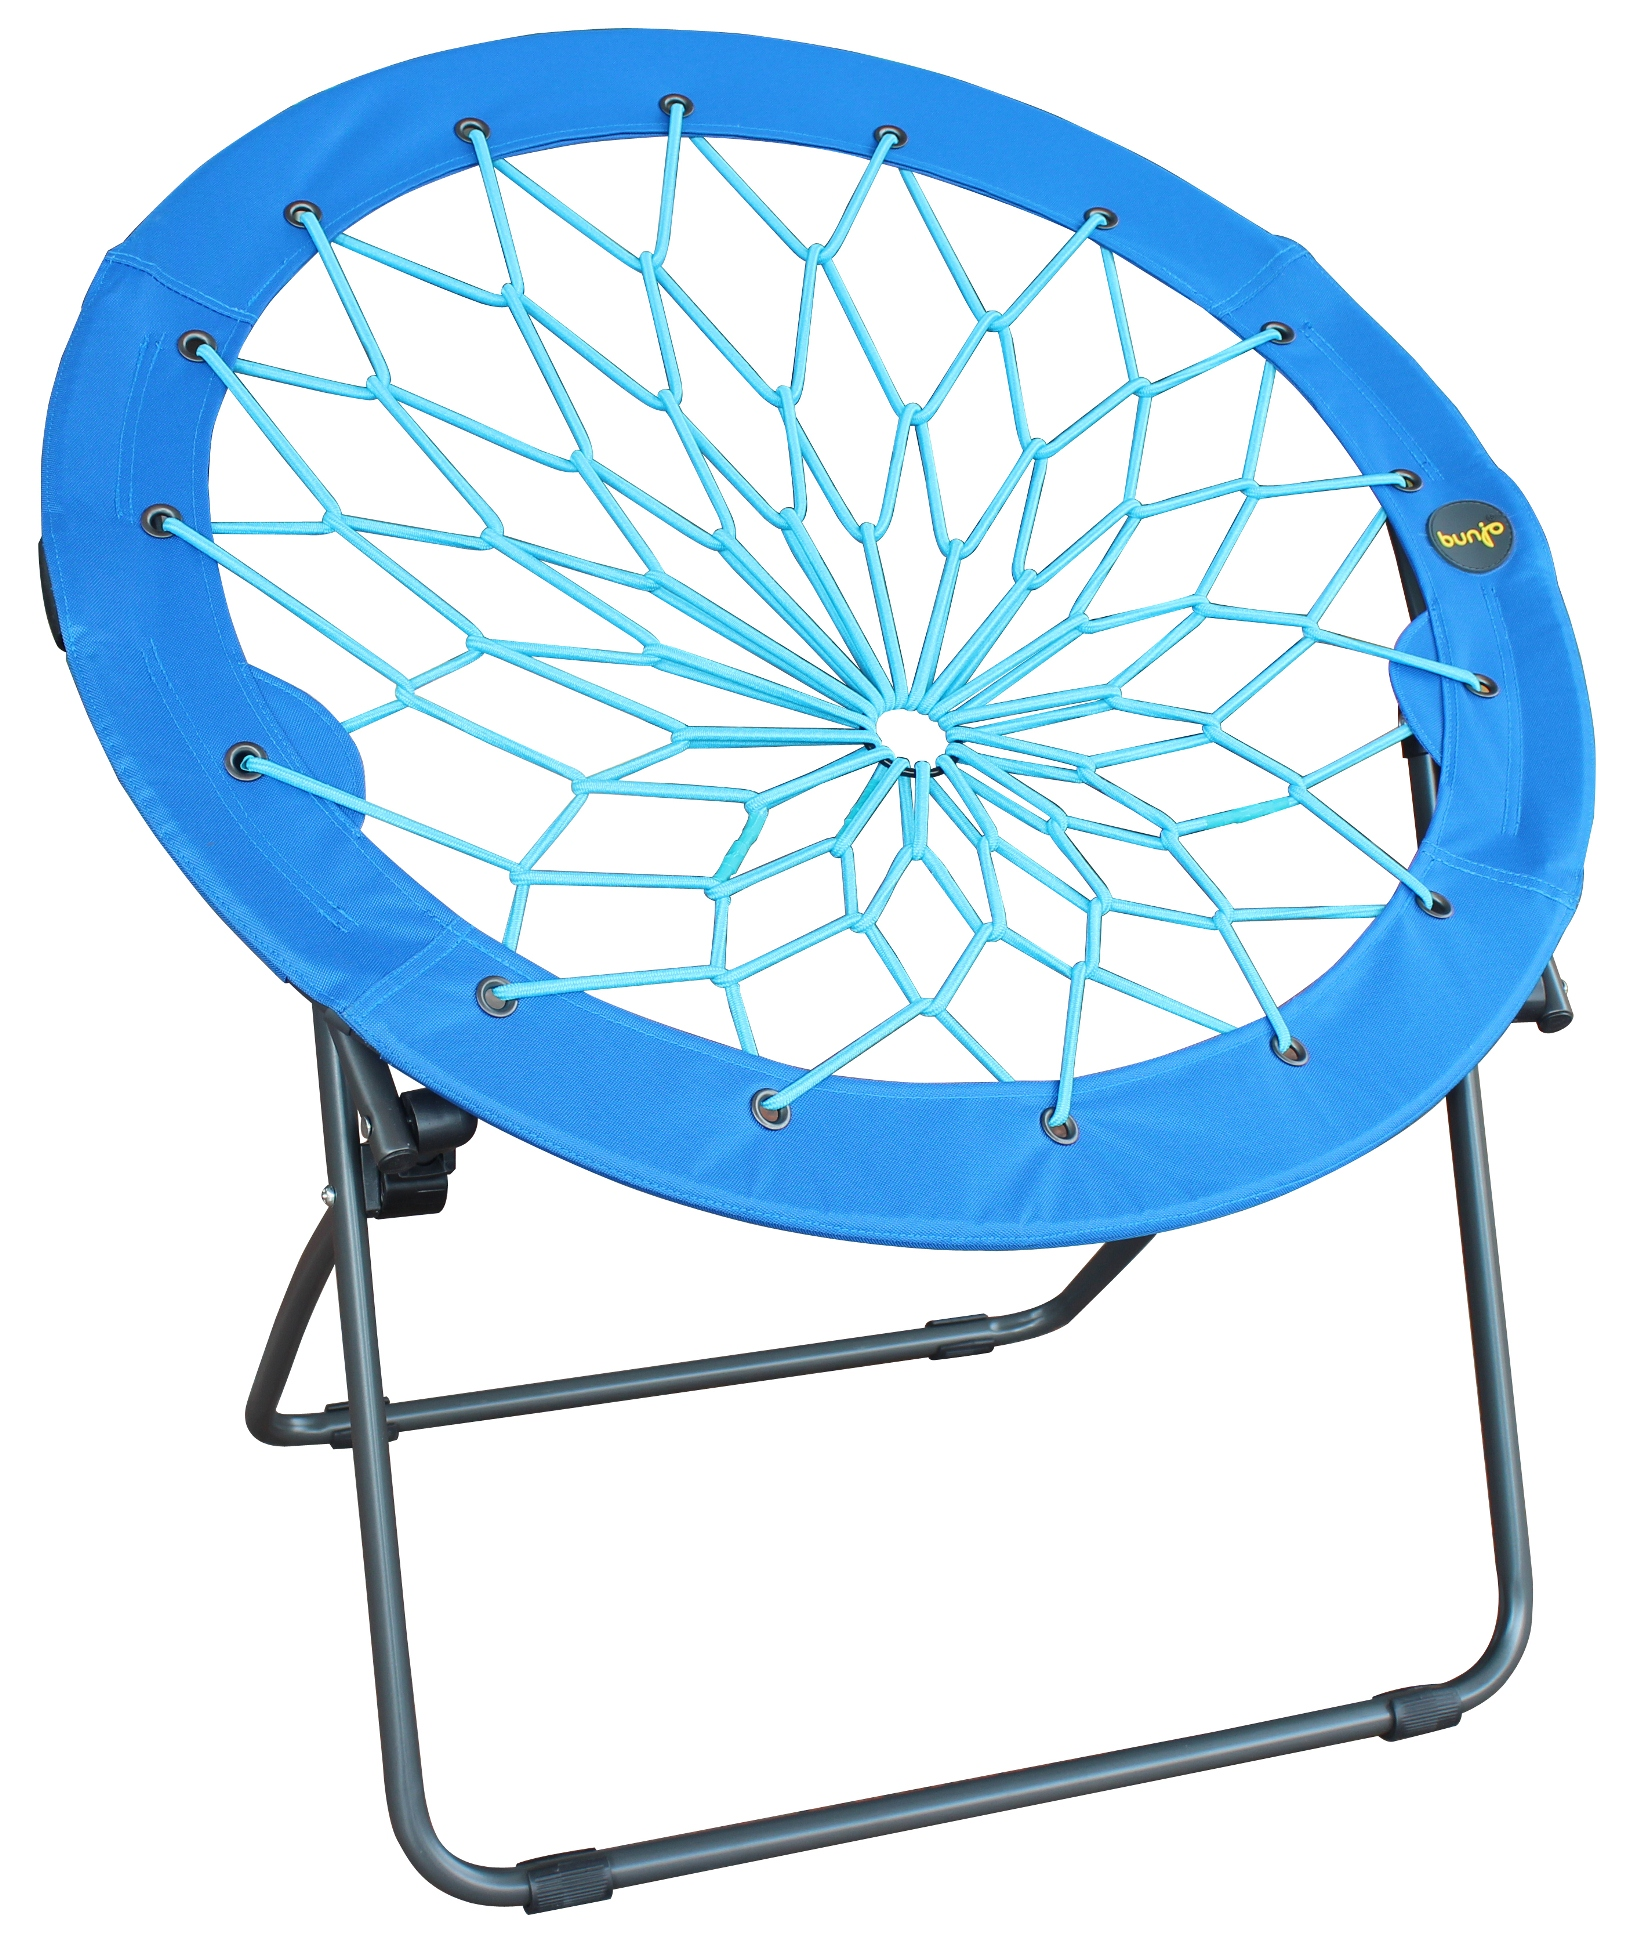 Blue Bunjo Bungee Chair—$24 99 $4 99 in SYWR Points